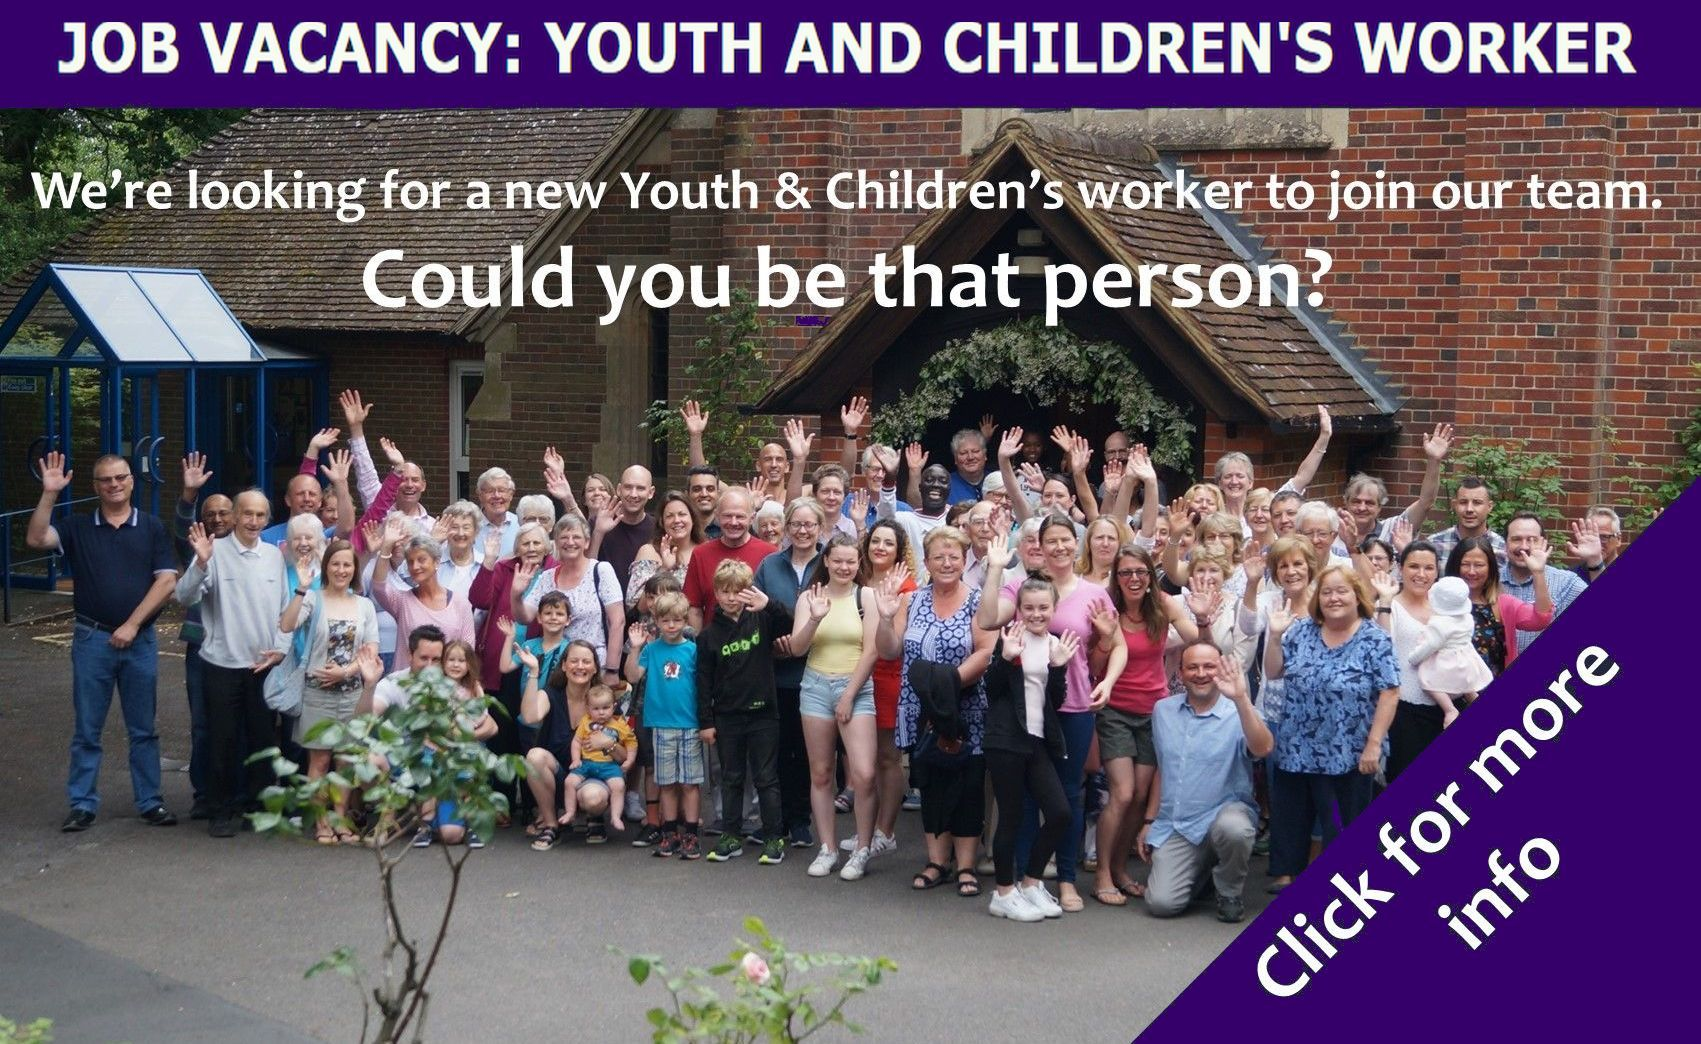 Youth Worker ad 3